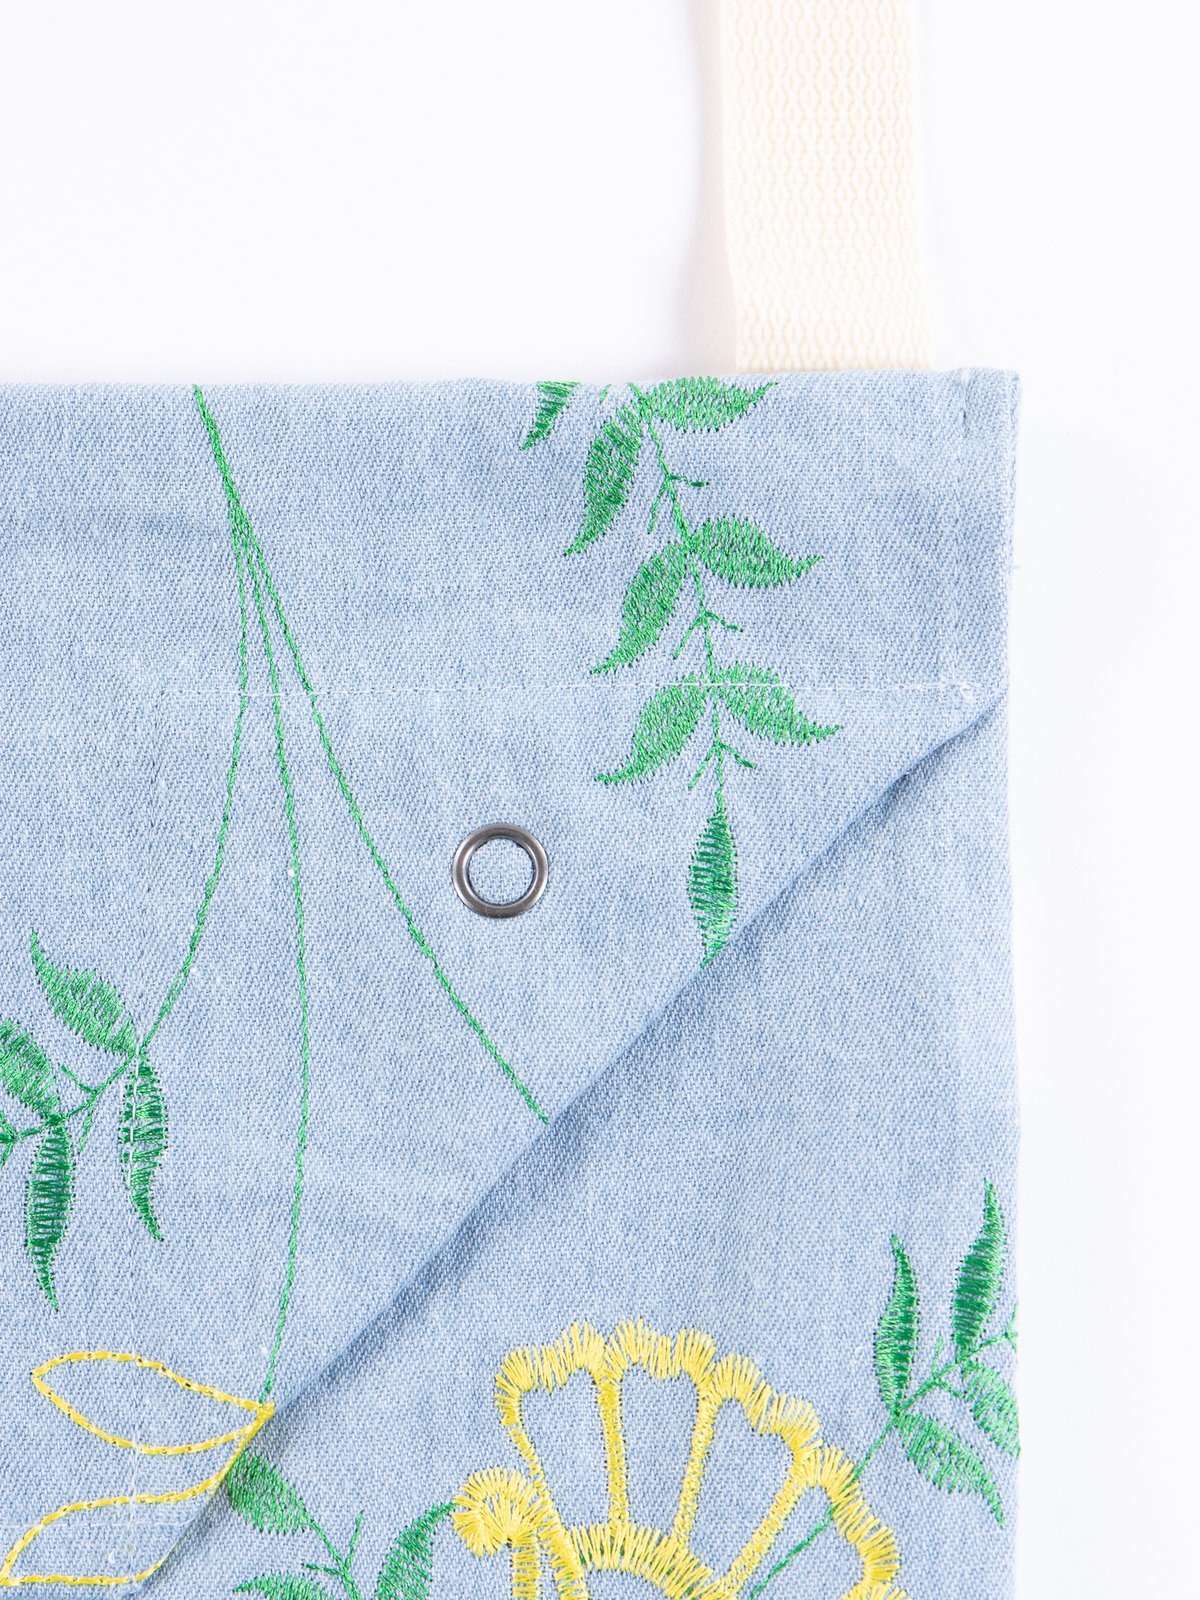 Light Blue Denim Floral Embroidery Shoulder Pouch - Image 3